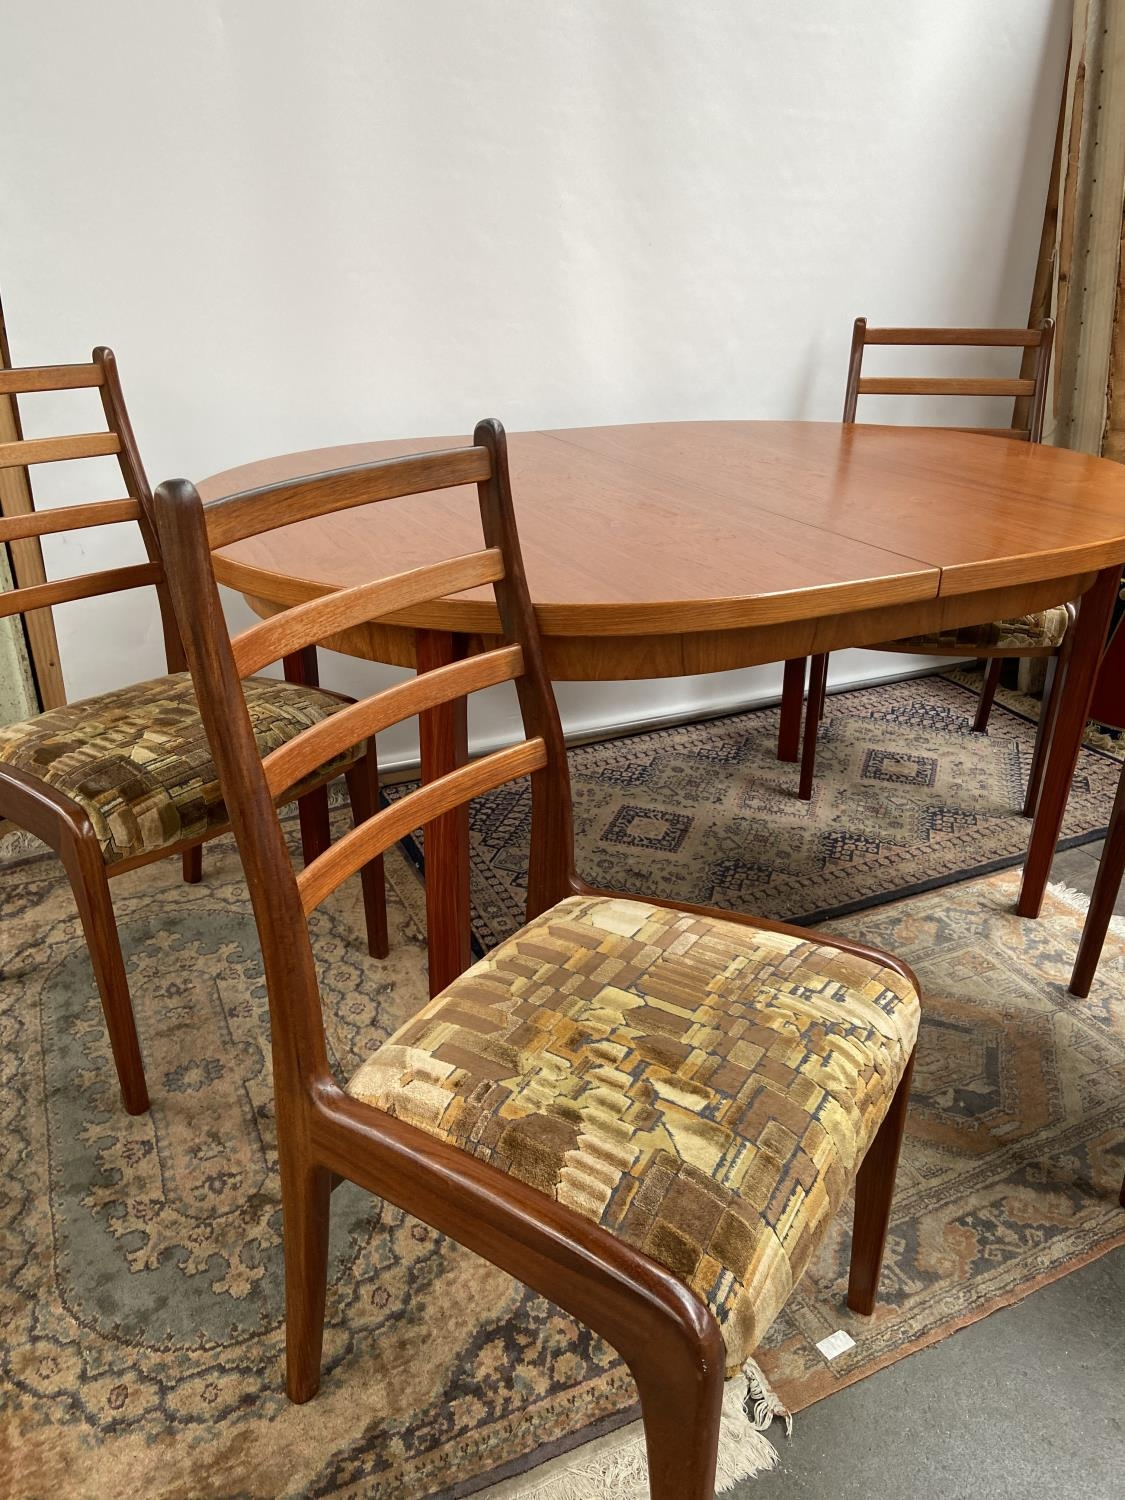 A mid century table & 4 chairs [74x150x100cm] [chair height, 92cm] - Image 2 of 7